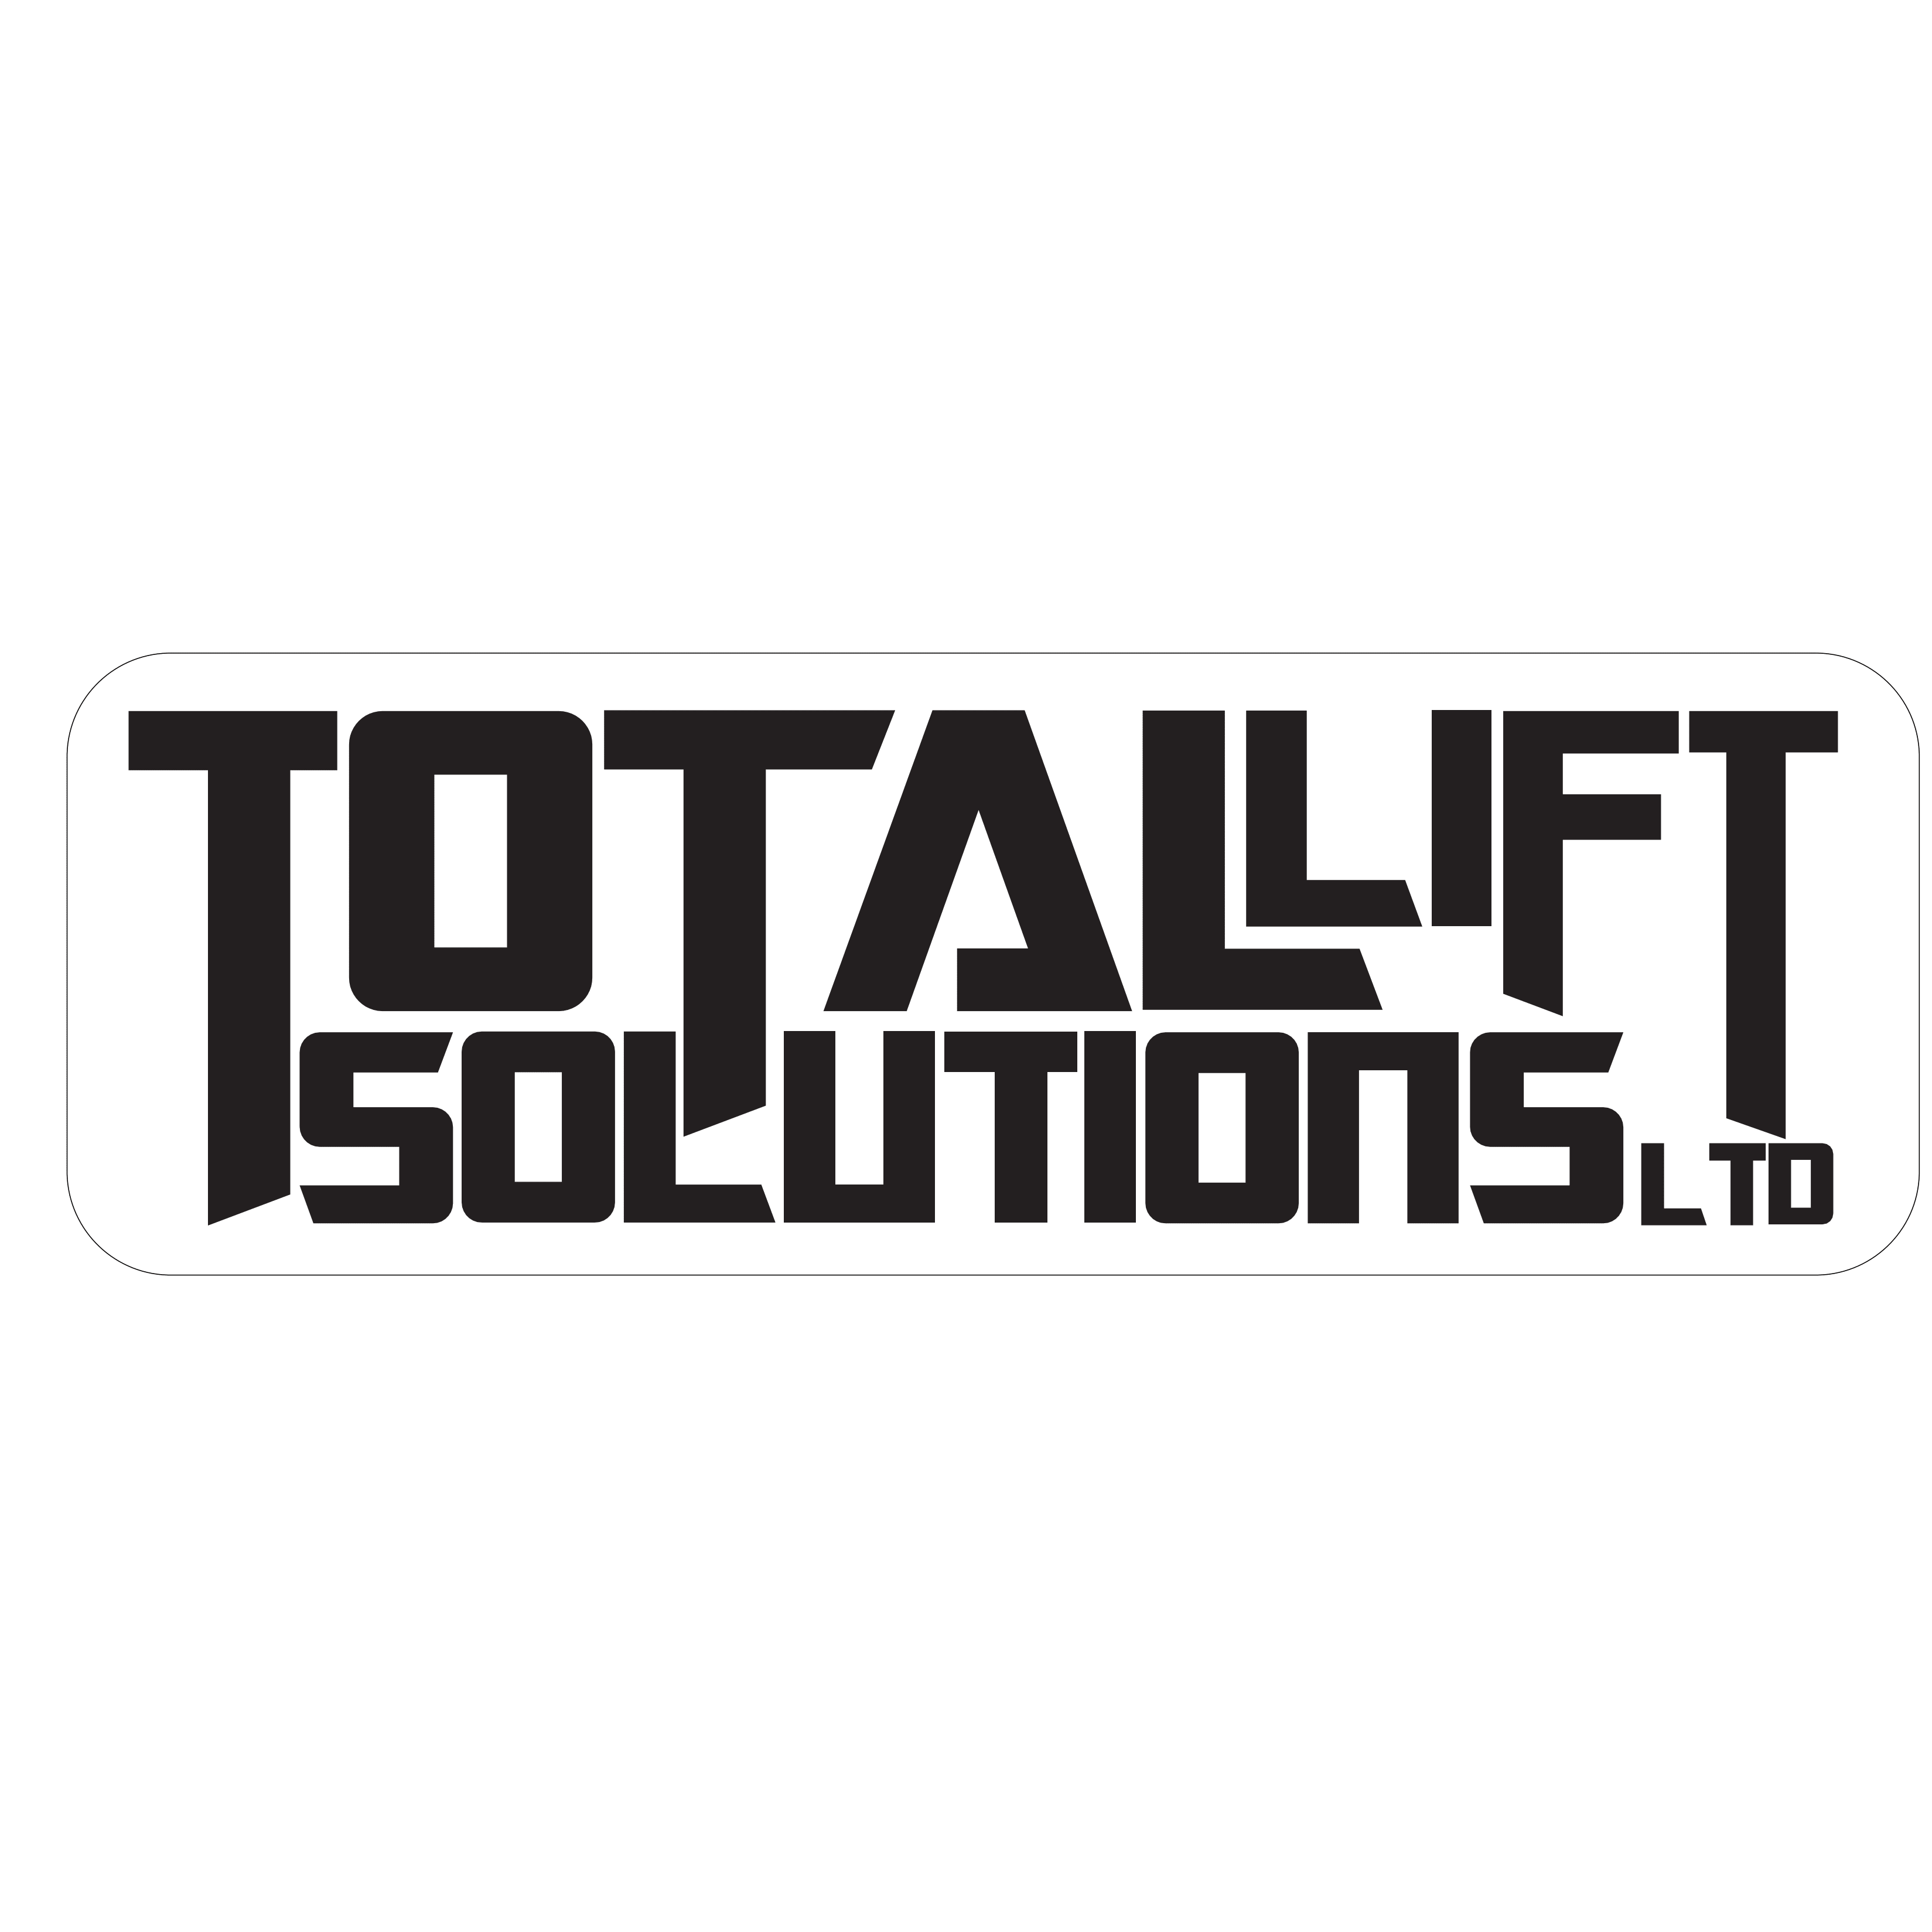 Total Lift Solutions Ltd - London, Hertfordshire W11 4BE - 01202 898192 | ShowMeLocal.com